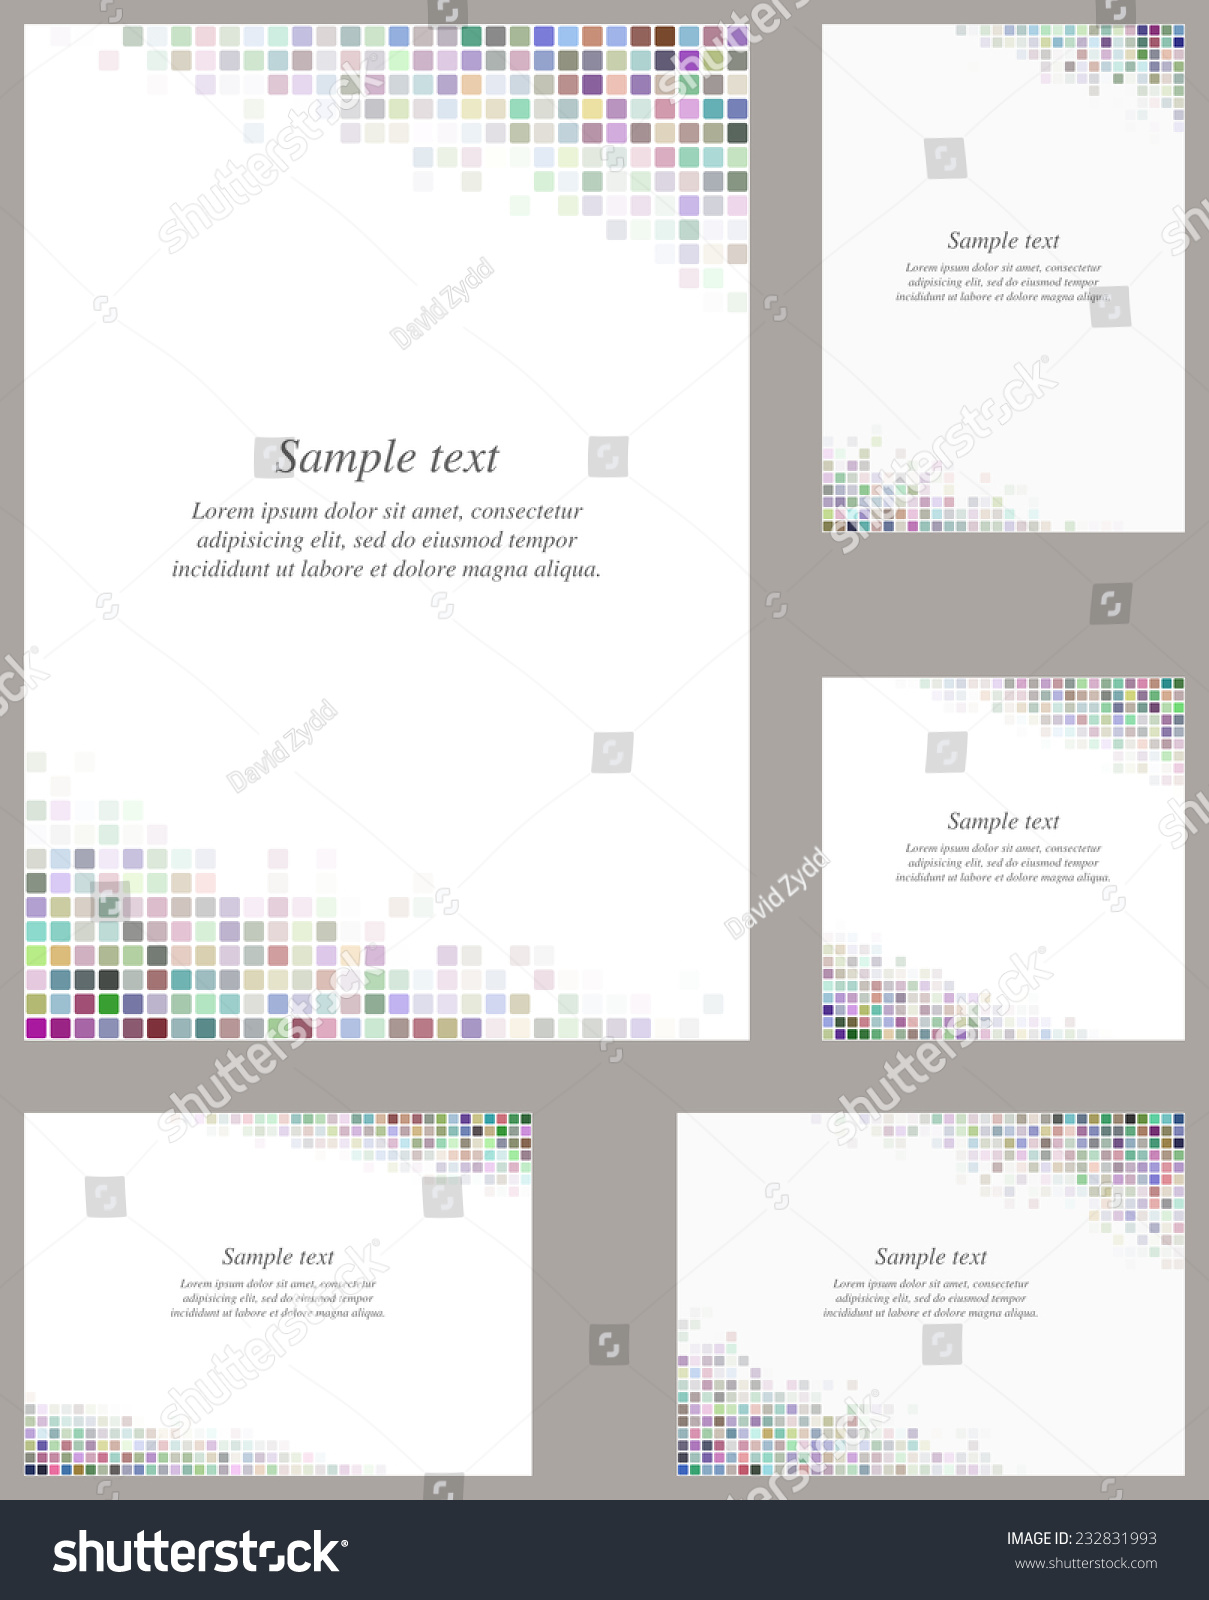 Multicolor page corner design template invitation stock vector multicolor page corner design template for invitation greeting presentation card letter stopboris Image collections